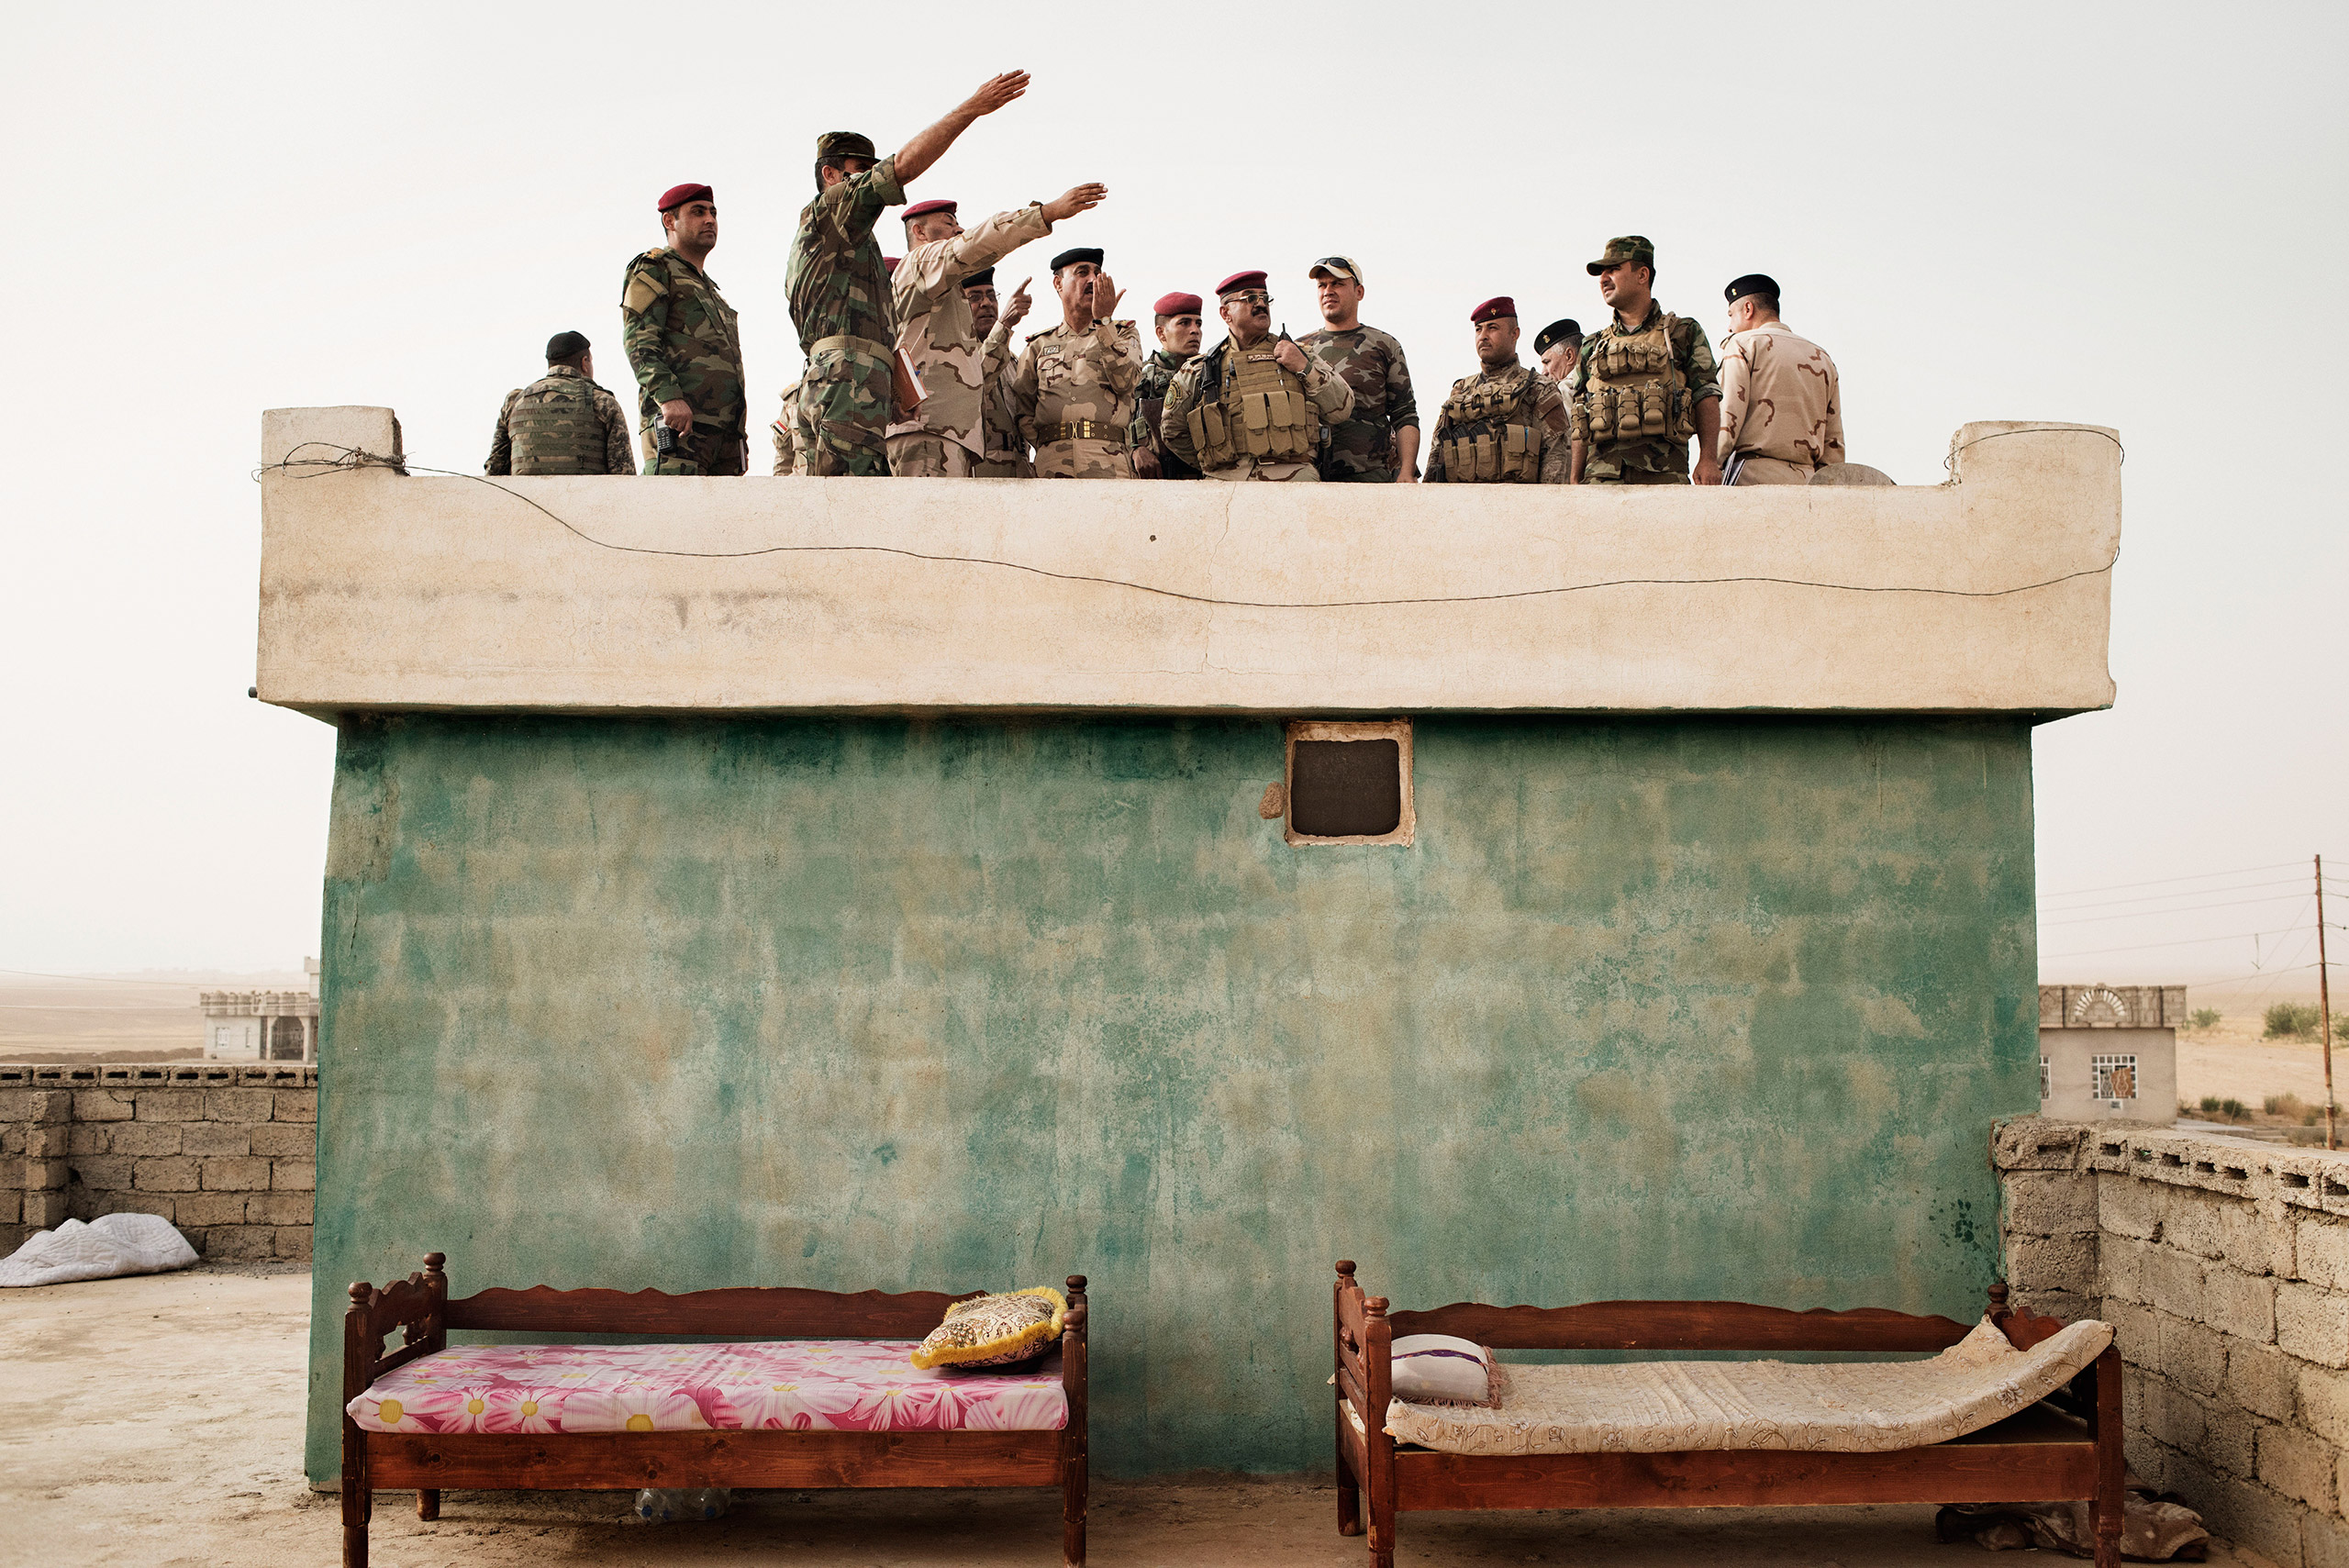 Iraqi Army commanders survey the front line in the villageof Kharbardan, south of Mosul, May 18, 2016. The Iraqi military seized the village from ISIS in March, as a part of a grinding march toward the city of Mosul, a major city that has been under ISIS control since June 2014.From  Yuri Kozyrev: On the Front Lines of the War Against ISIS